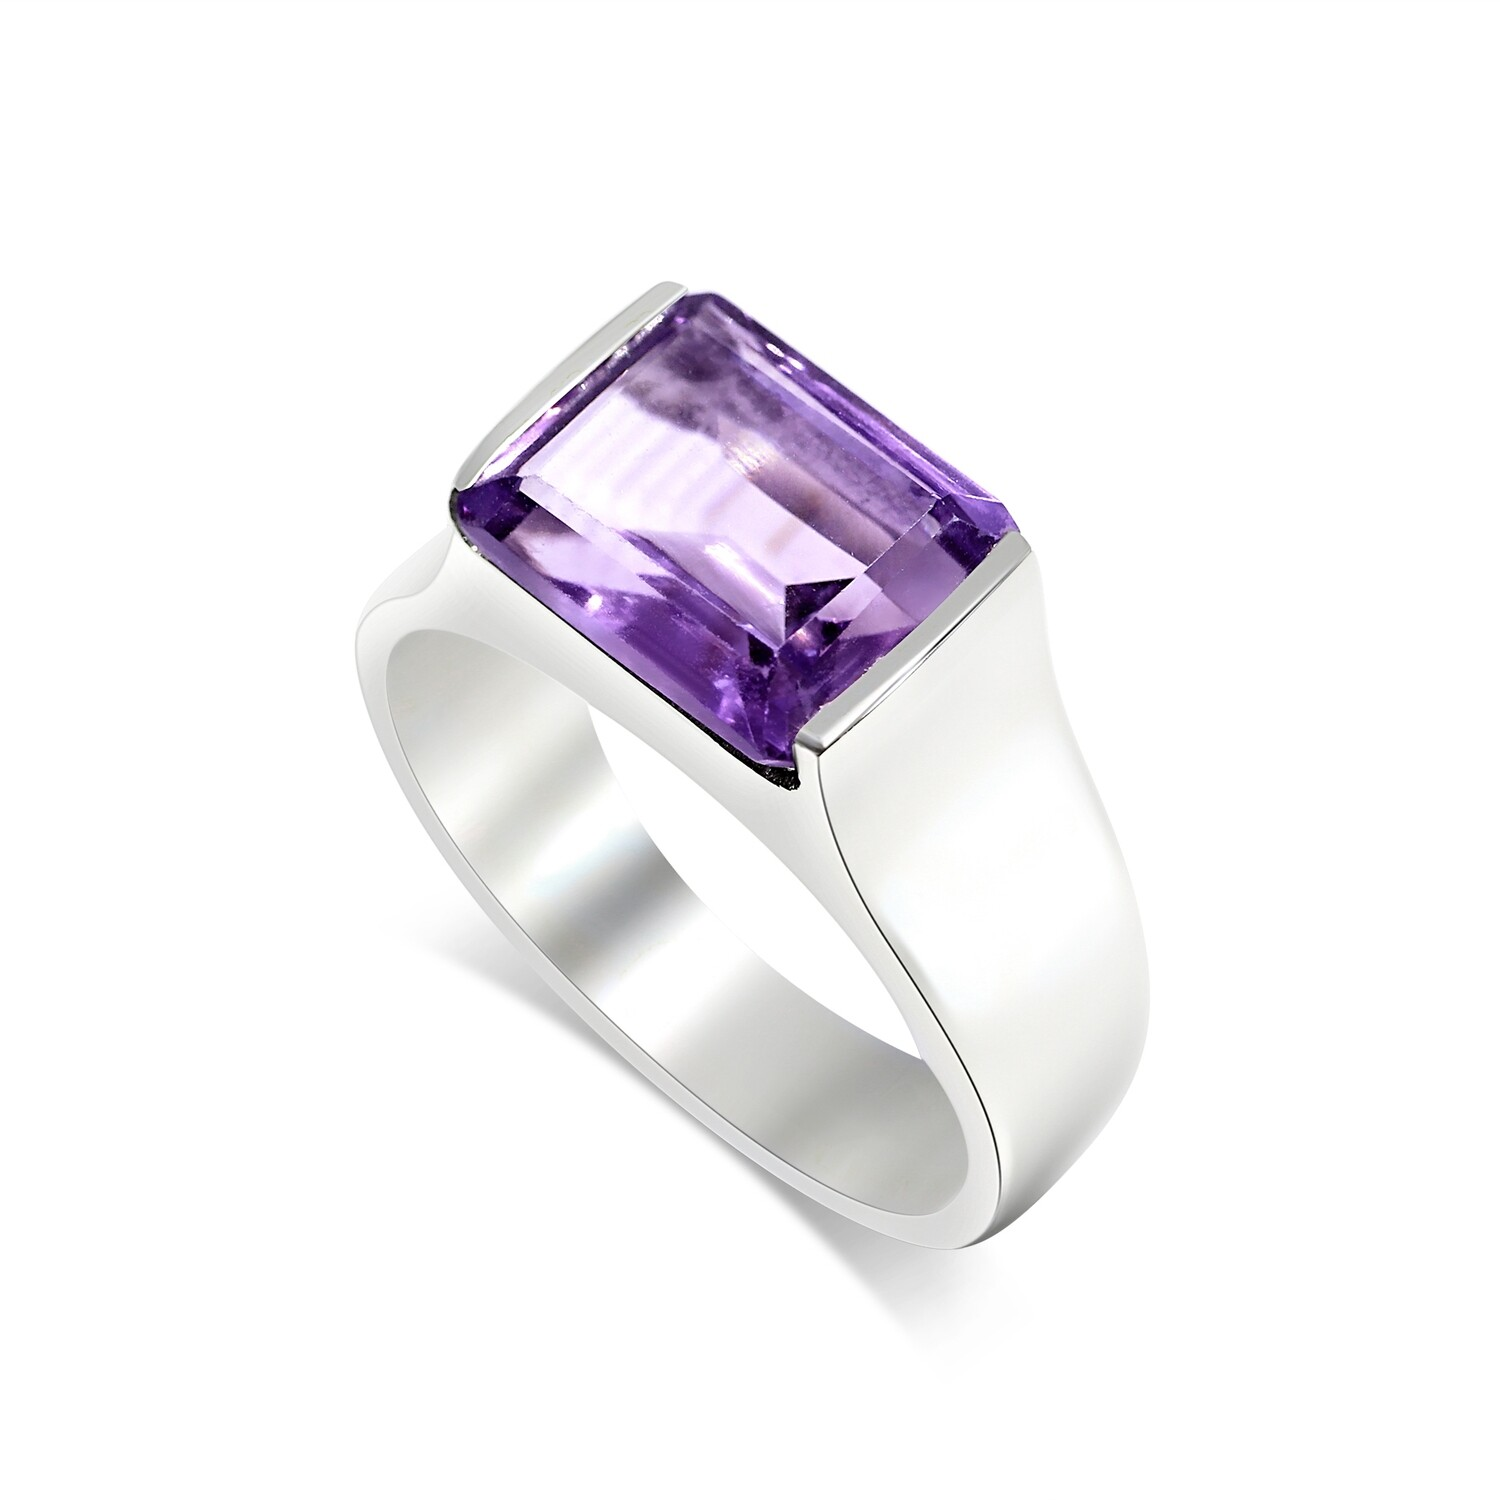 Brazilian Amethyst Ring Sterling Silver 925